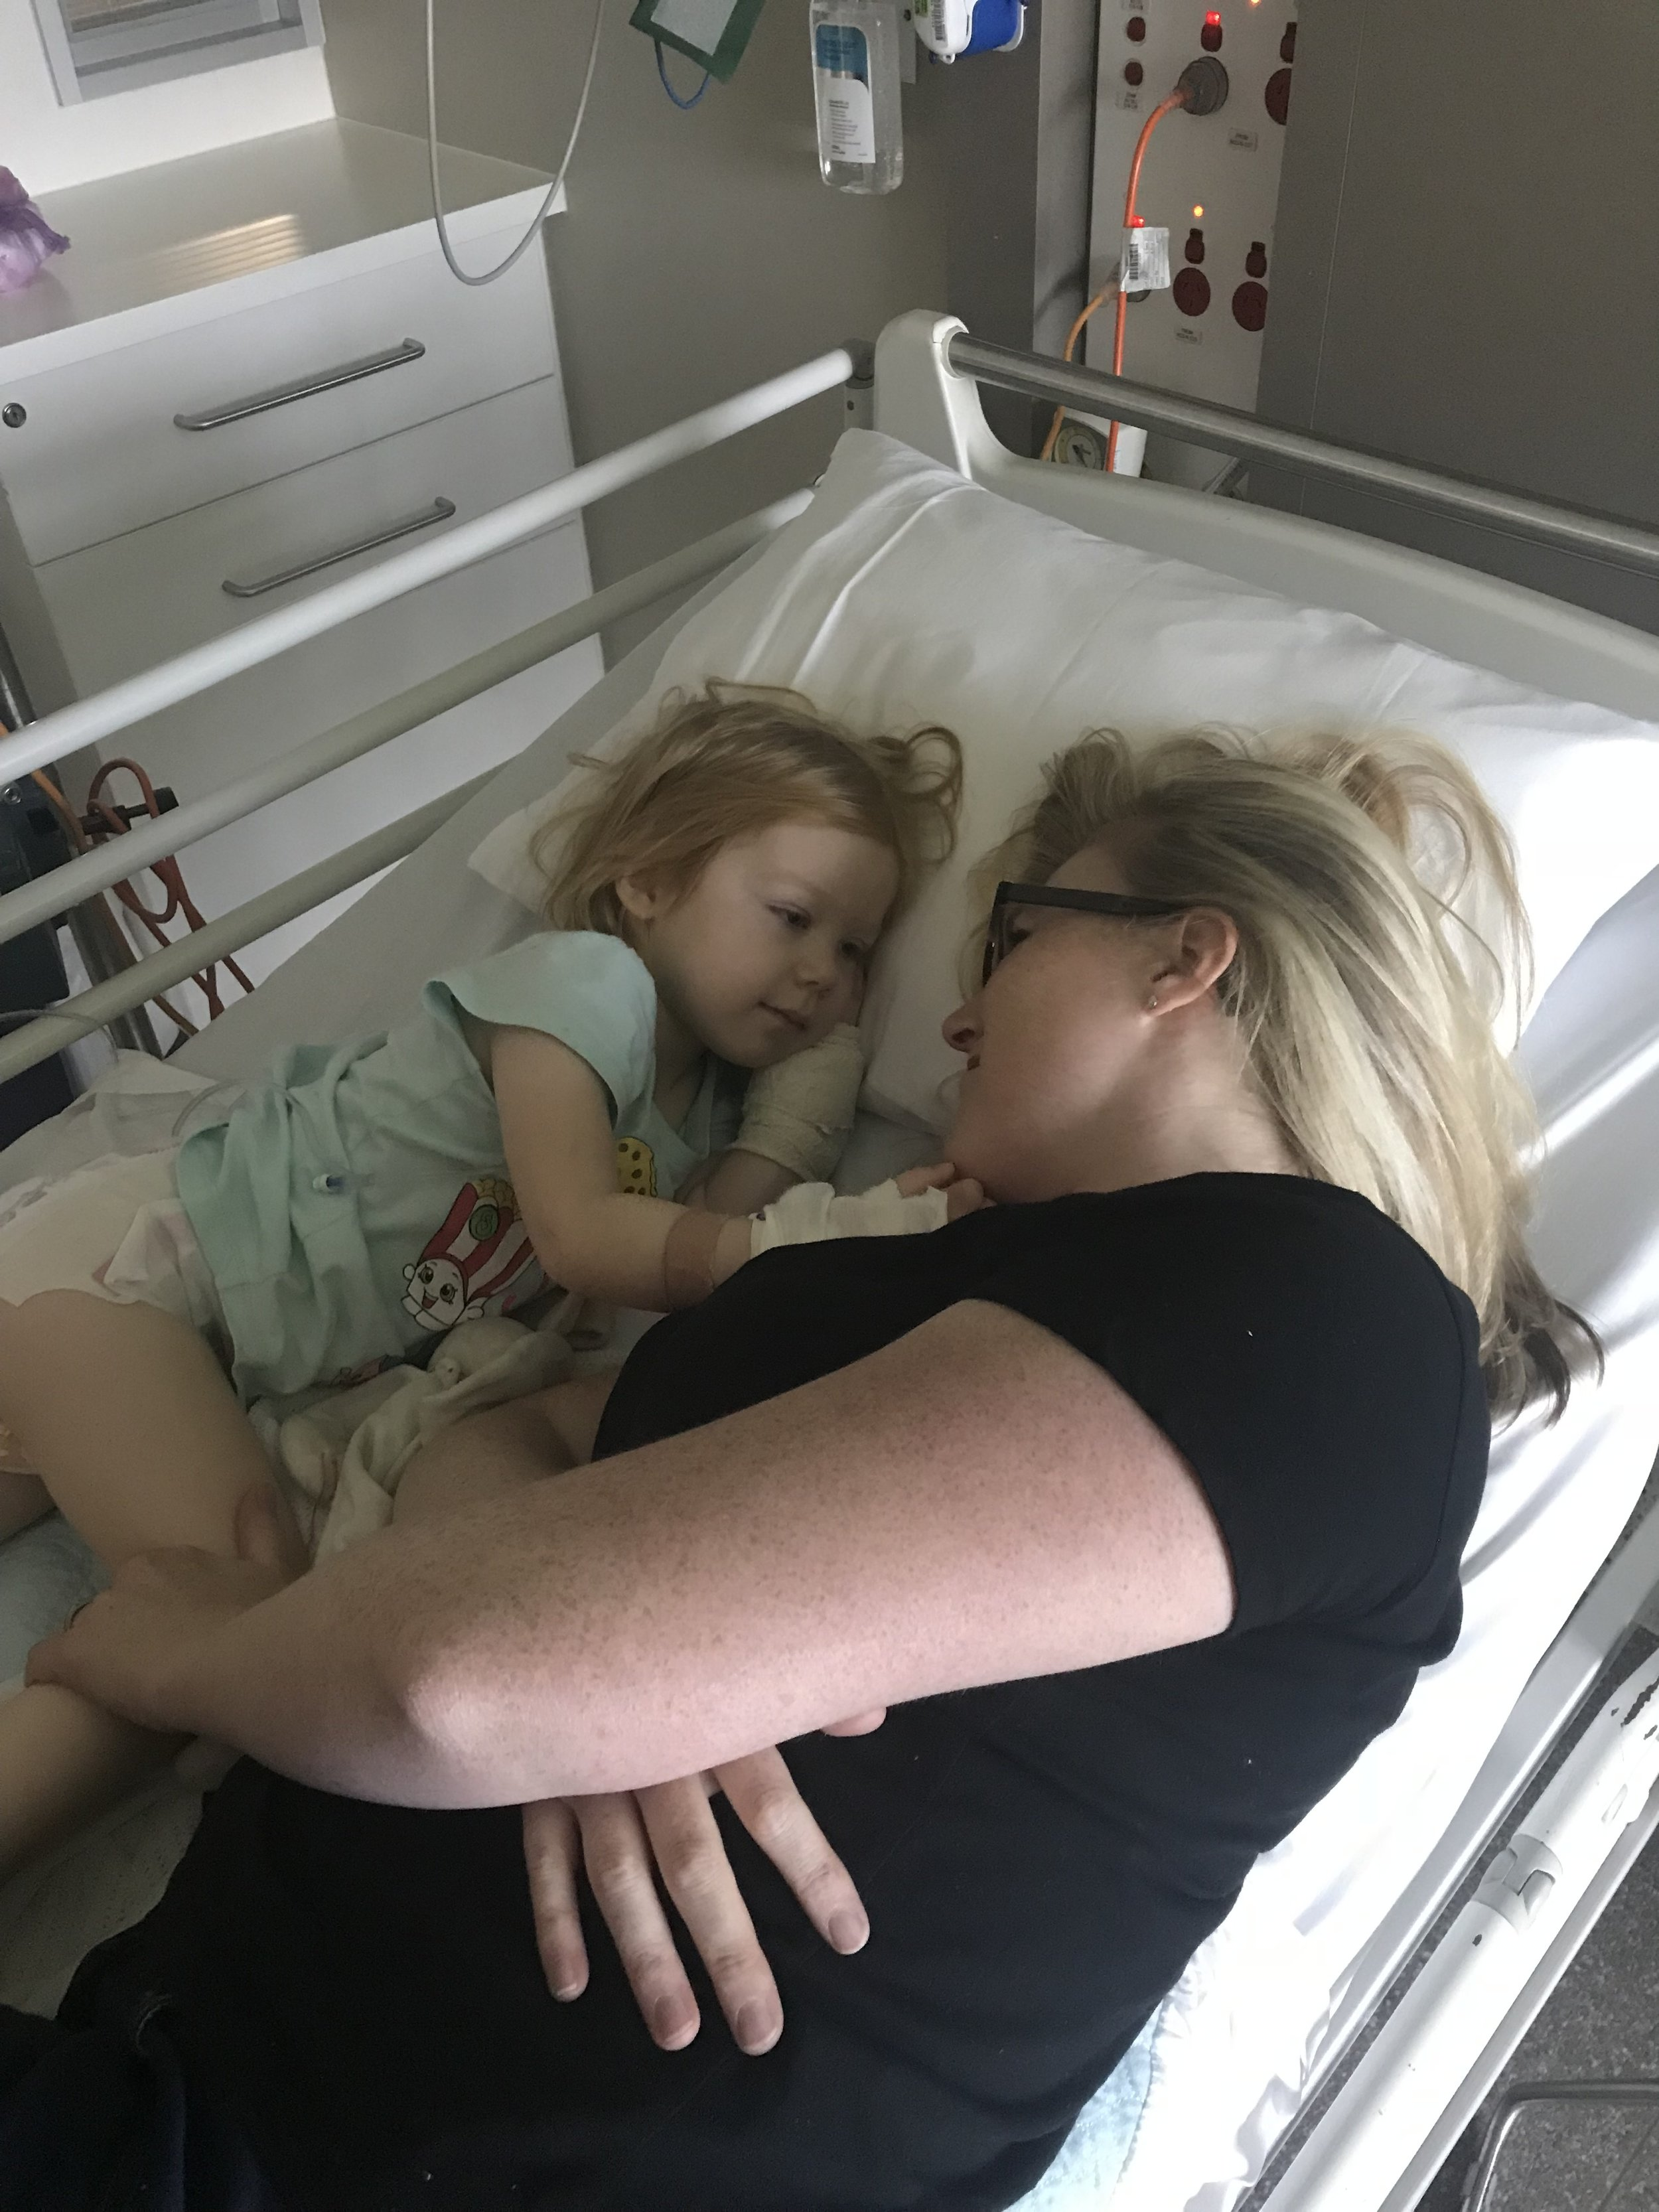 Our very first day at the Royal Children's Hospital on 19 December 2017